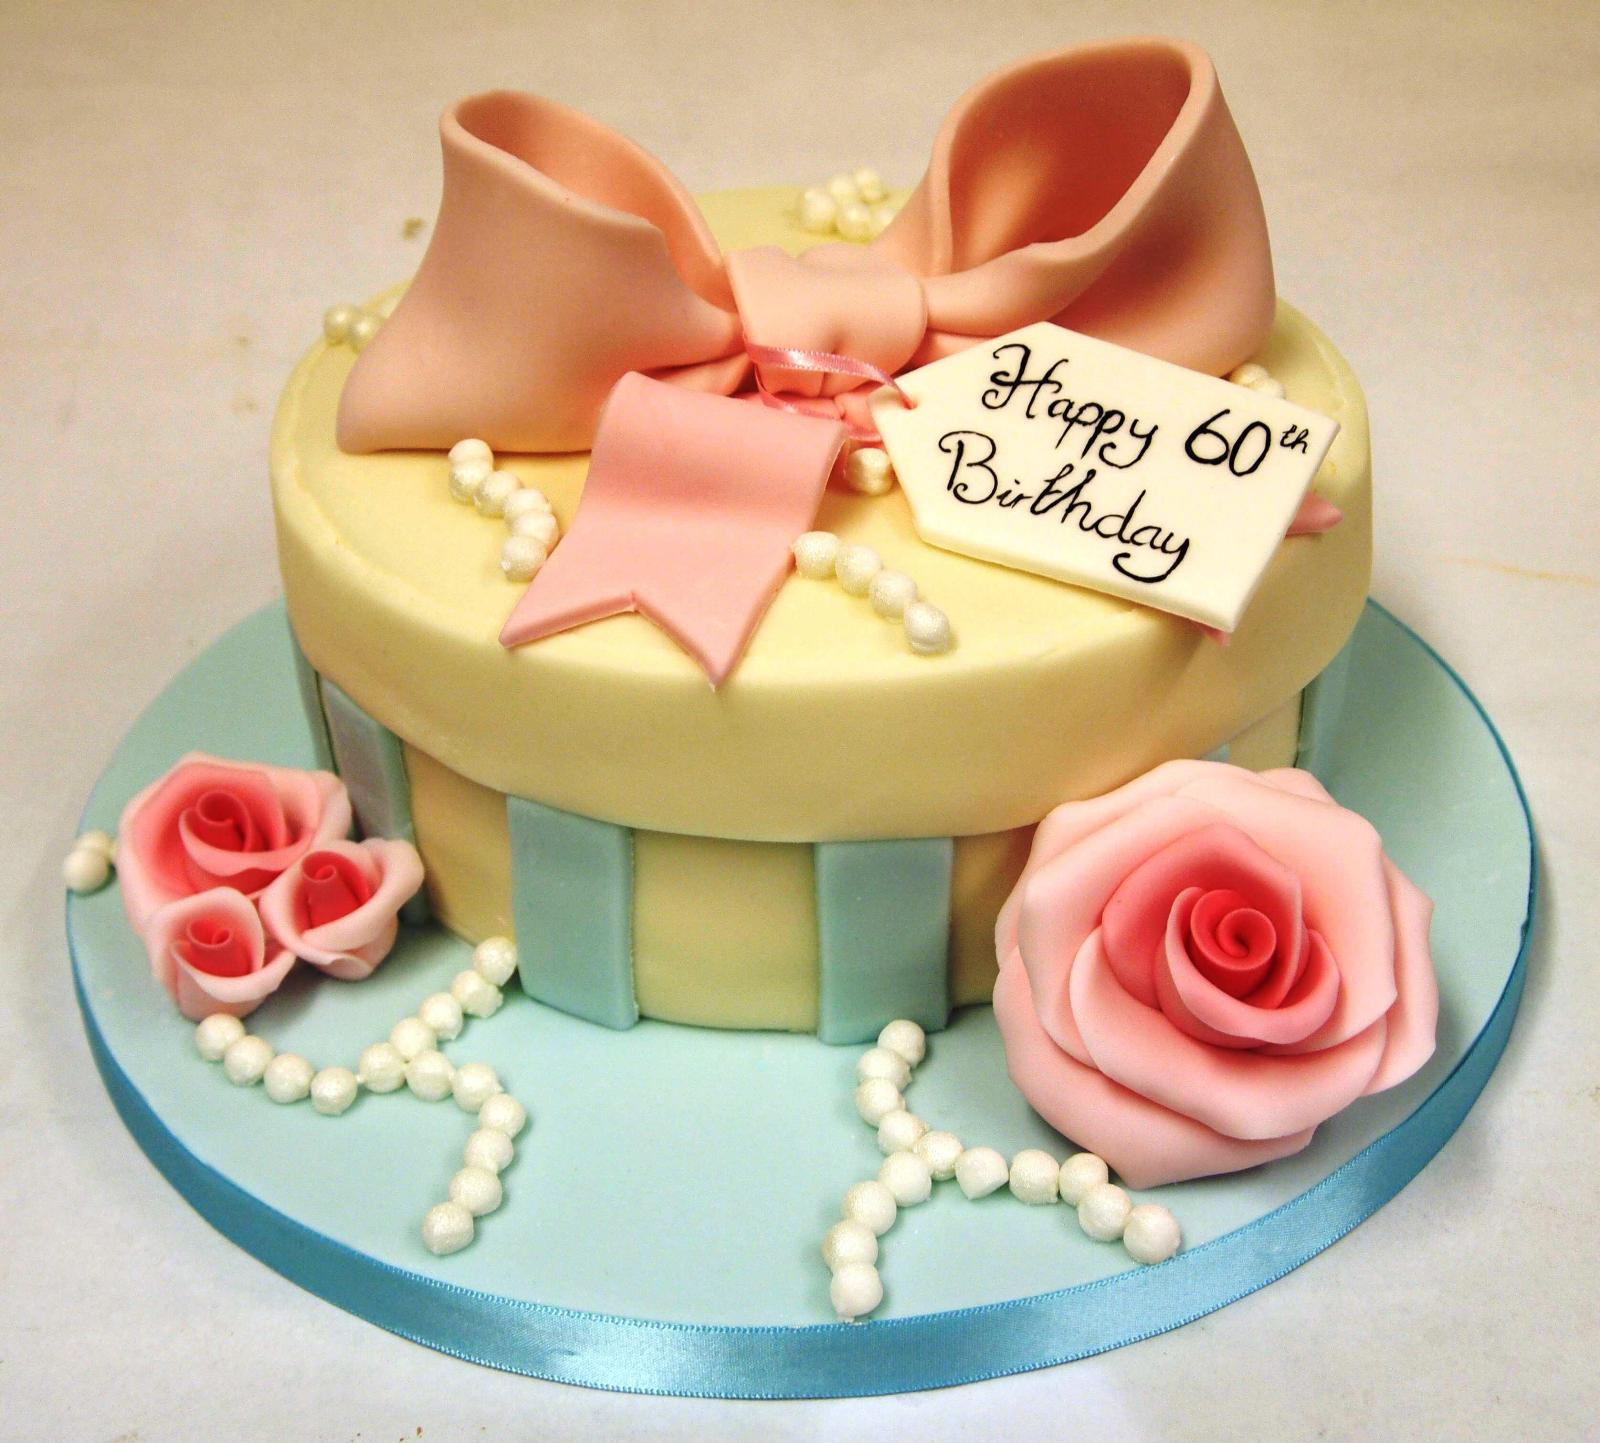 Womens Birthday Cake Ideas 60th Cakes As Decorations For The Men Protoblogr Design